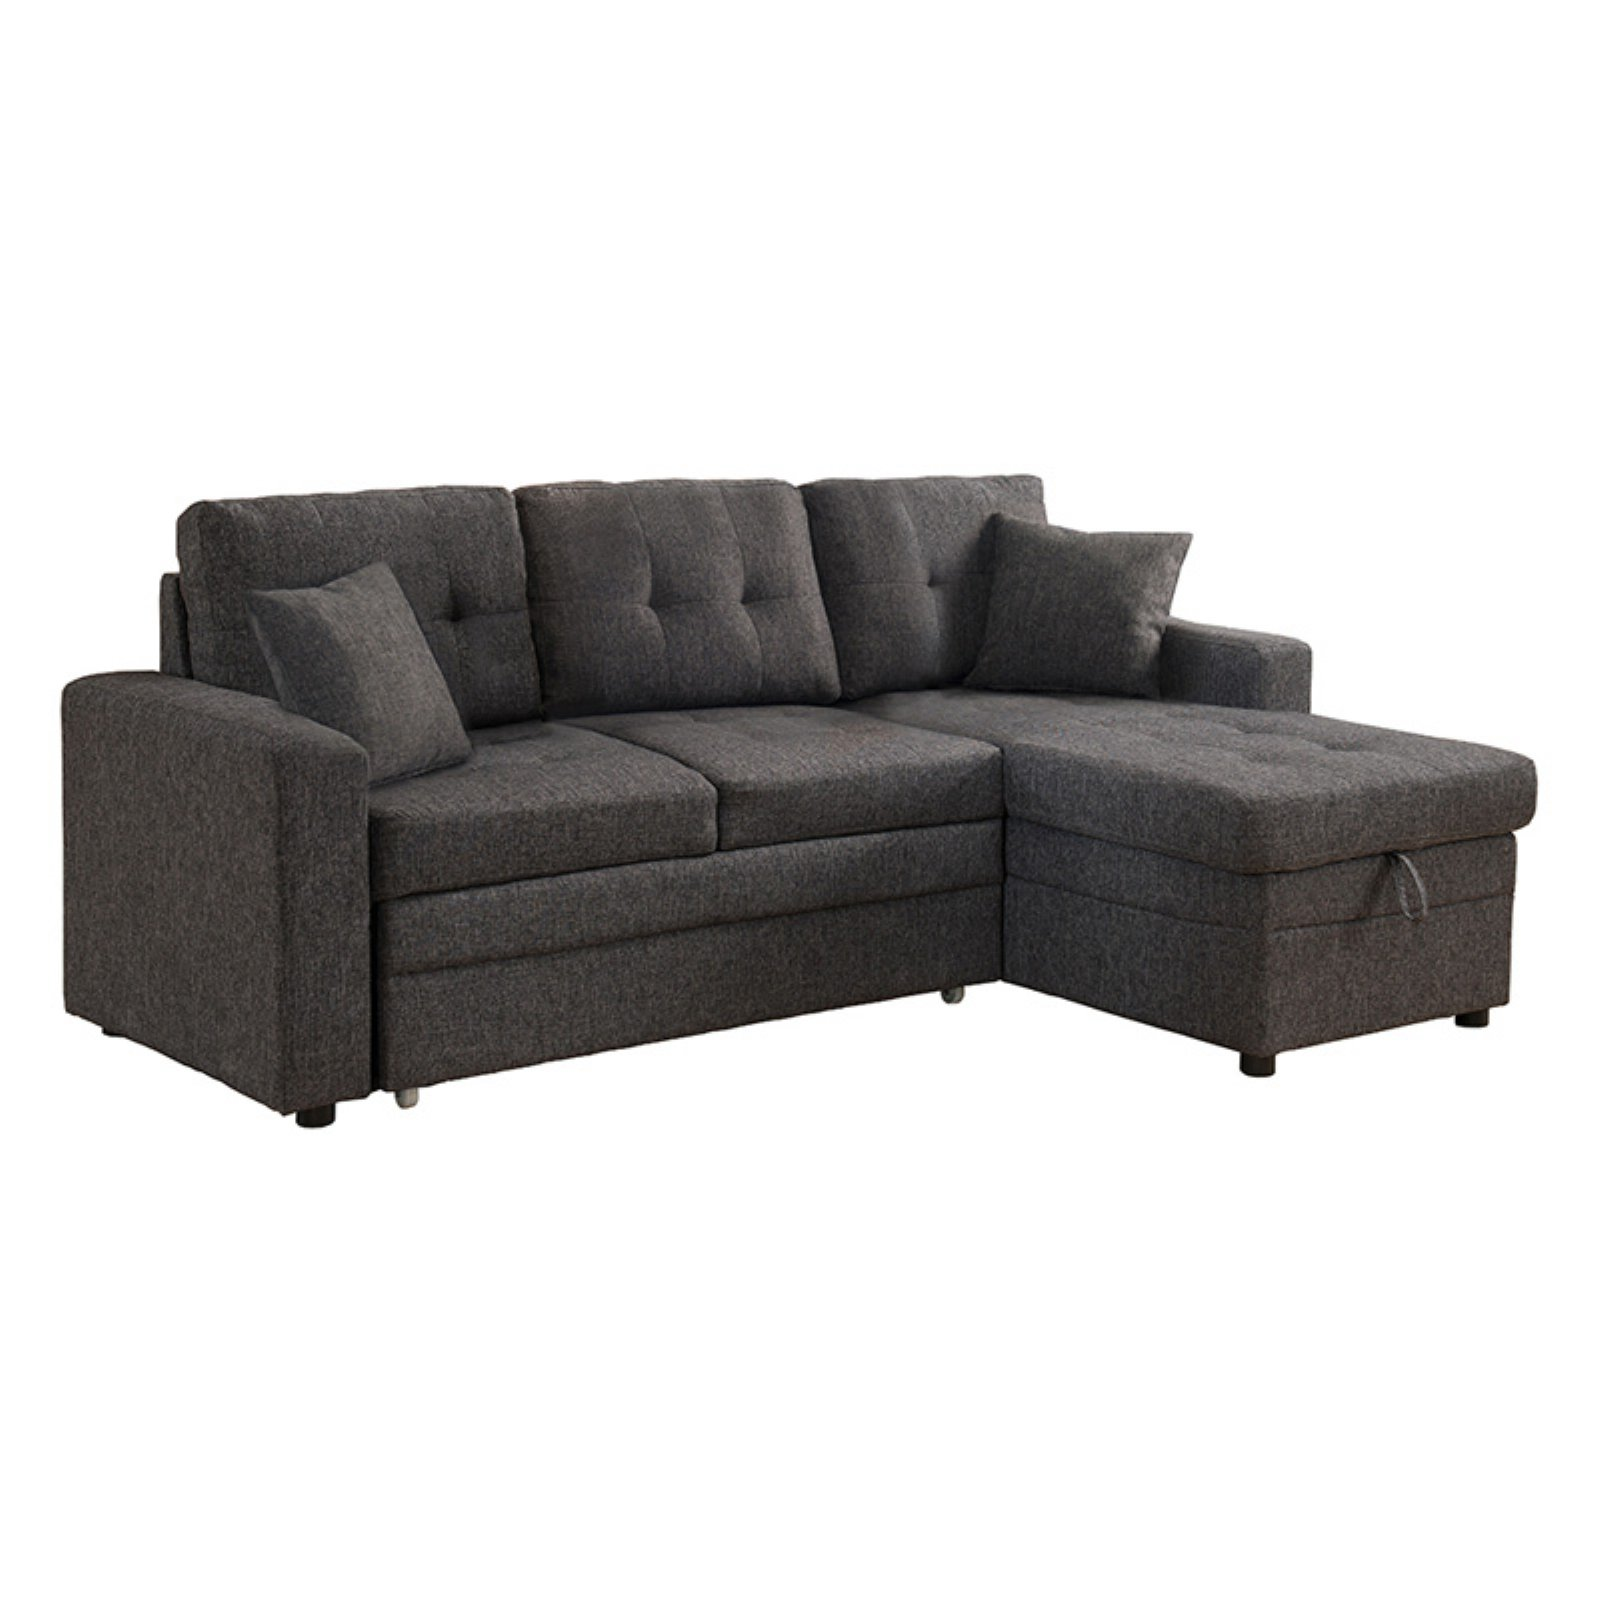 Picture of: Milton Greens Stars Darwin Sectional Sofa With Storage And Pull Out Bed Walmart Com Walmart Com